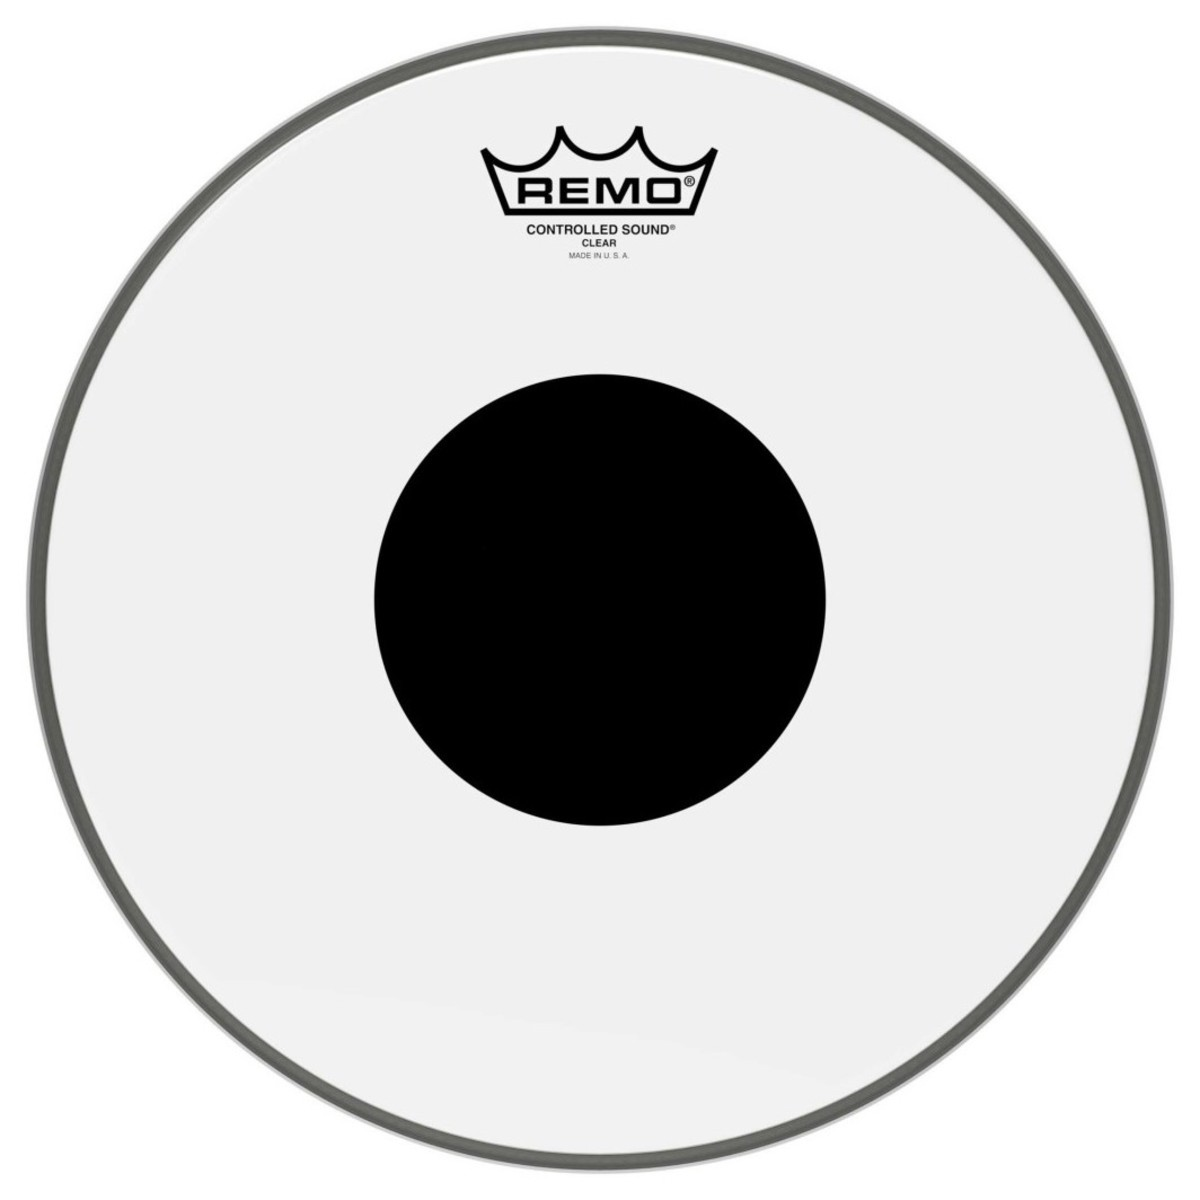 Remo Controlled Sound Clear 22 Black Dot Bass Drum Head